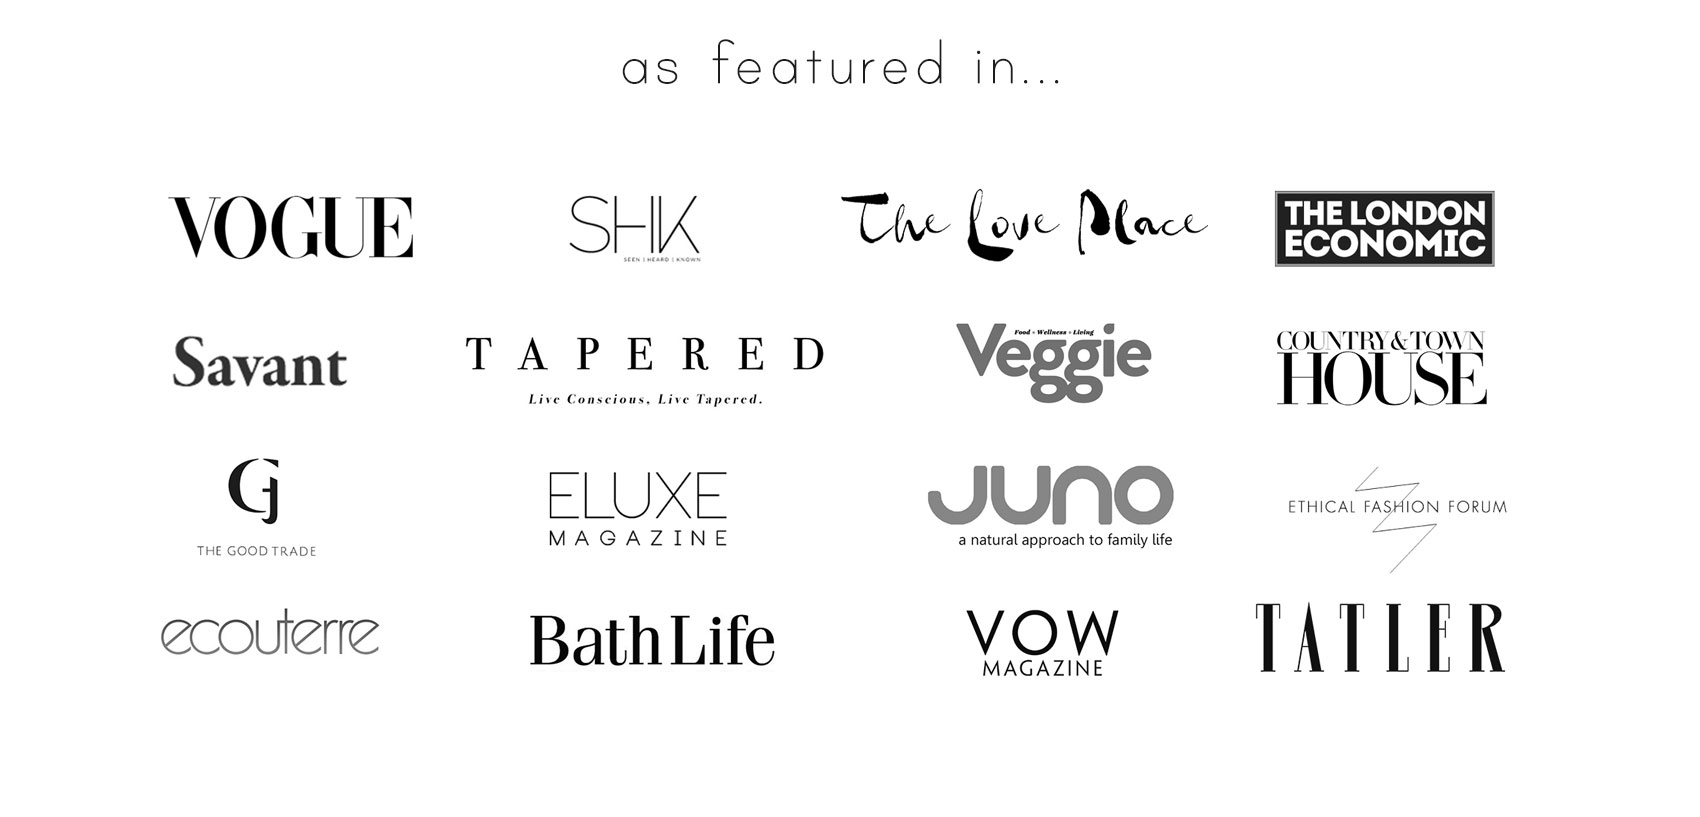 noctu has featured in vogue, veggie, the love place, tatler, eluxe magazine, the london economic, country & town house, the good trade, tampered, juno, ethical fashion forum, ecouterre, bath live, shk, savant, country calling